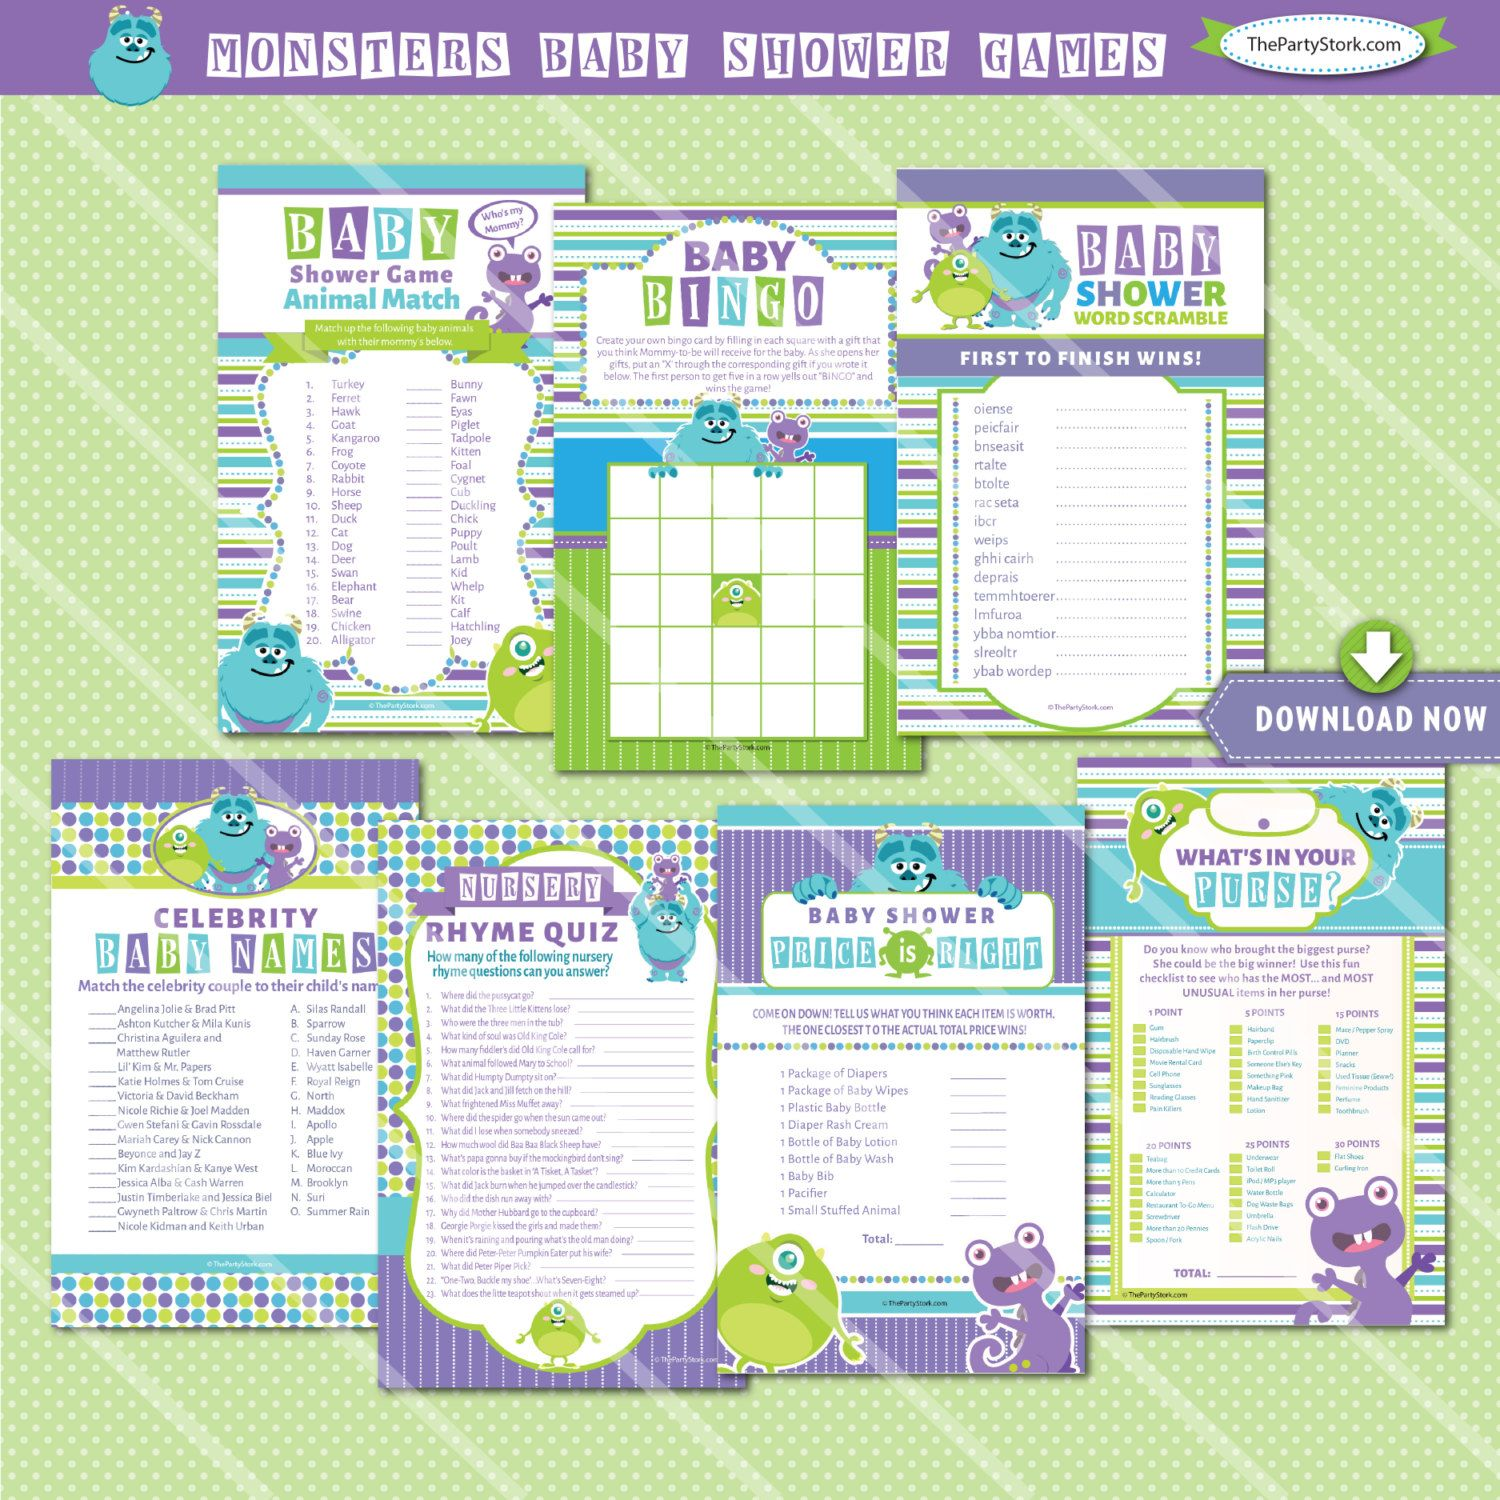 Monsters Inc Baby Shower Games, Monsters Inc Baby Shower Game ...